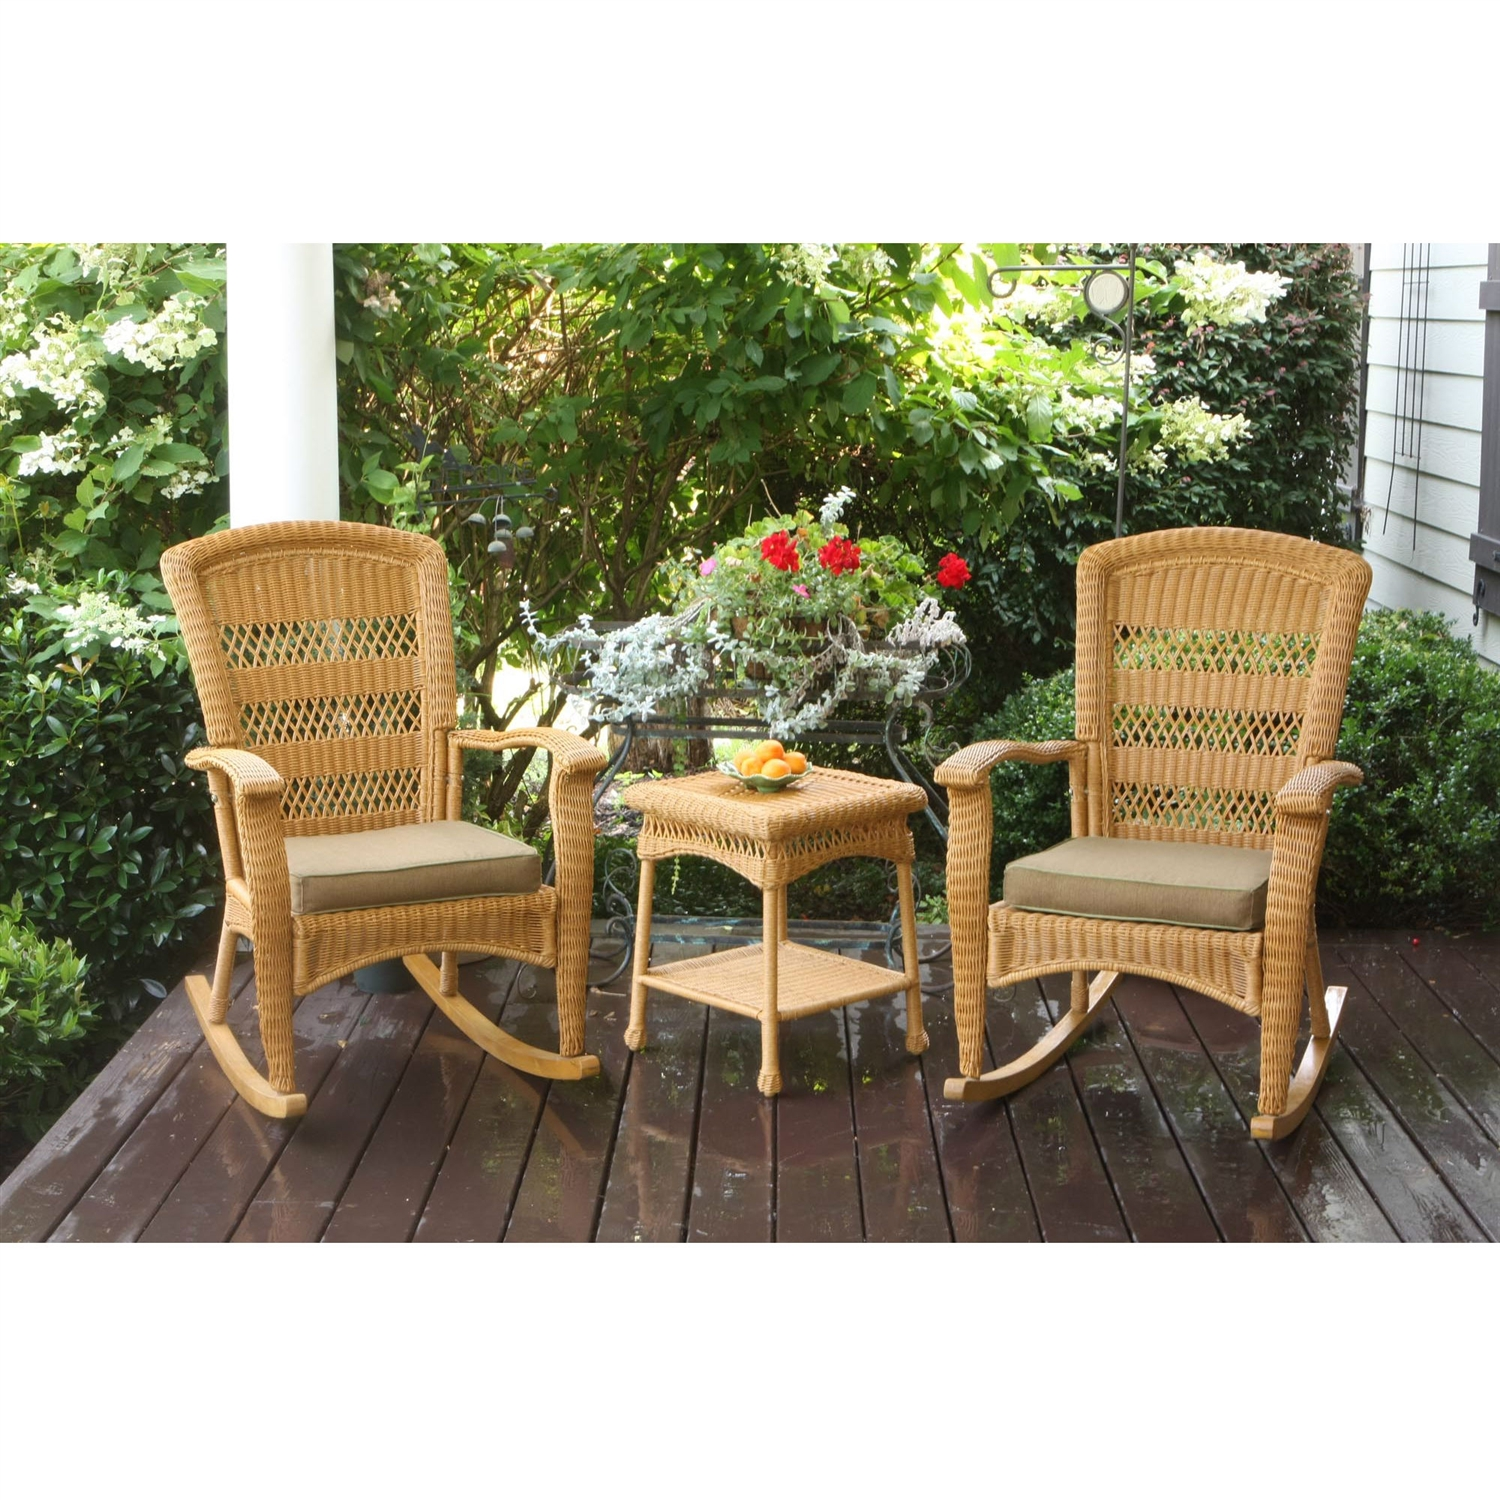 3pc outdoor porch rocker set w 2 amber wicker resin rocking chairs u0026 table